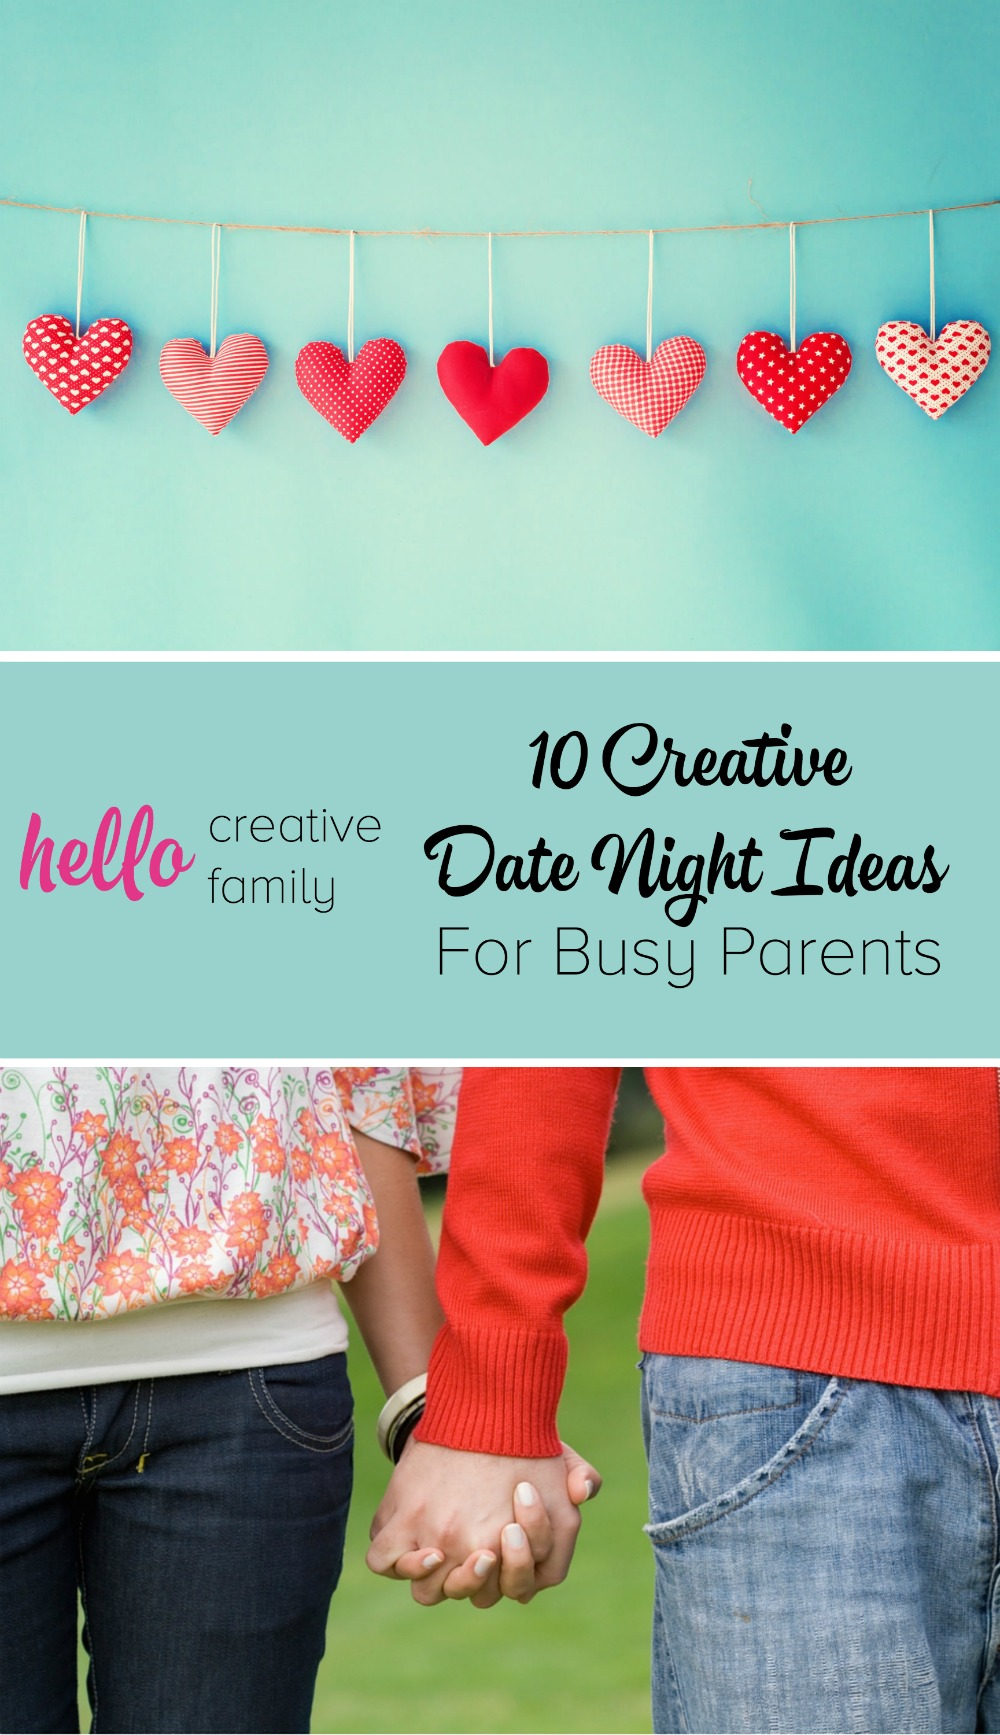 I need to take some of these ideas and get creative with dates with my husband! 10 Creative Date Night Ideas for Busy Parents